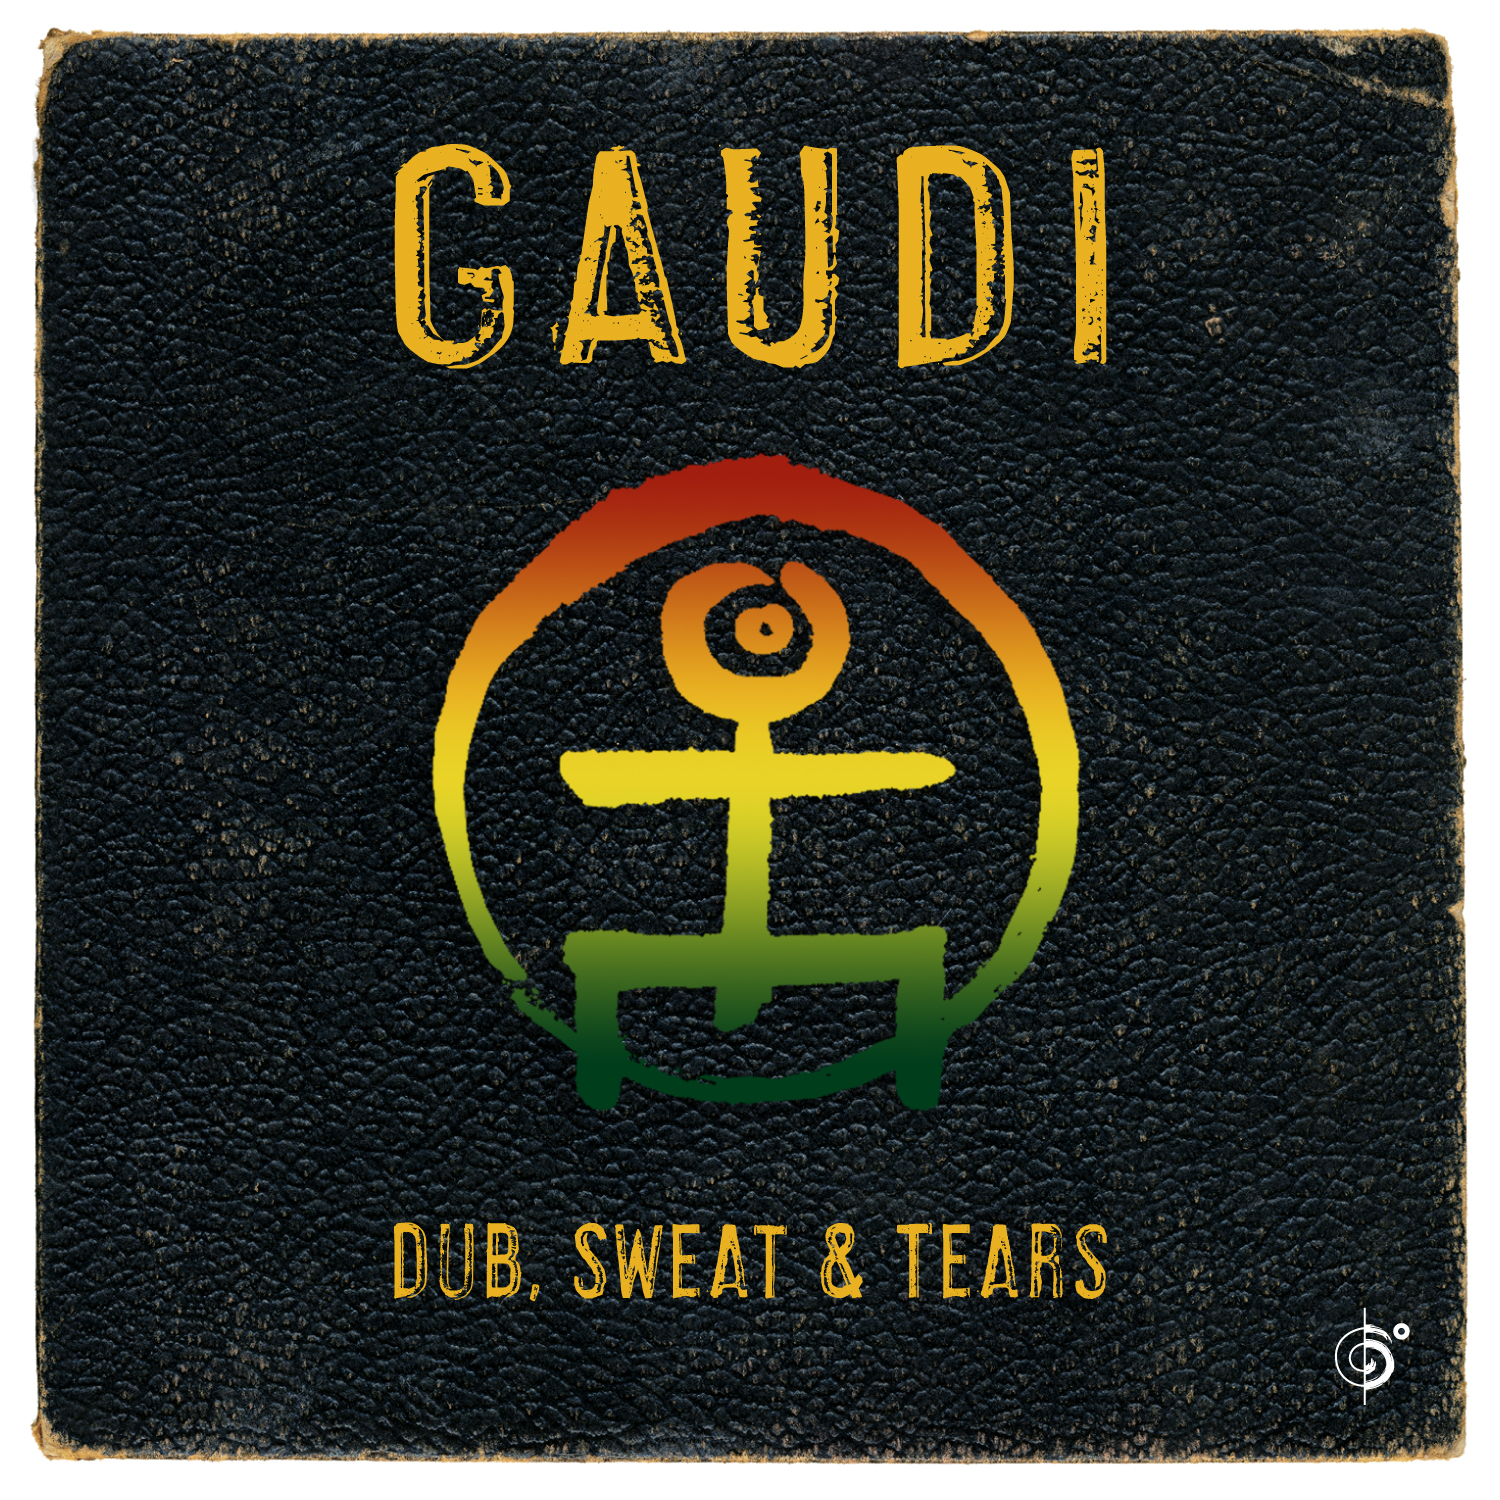 GAUDI – Dub, Sweat & Tears